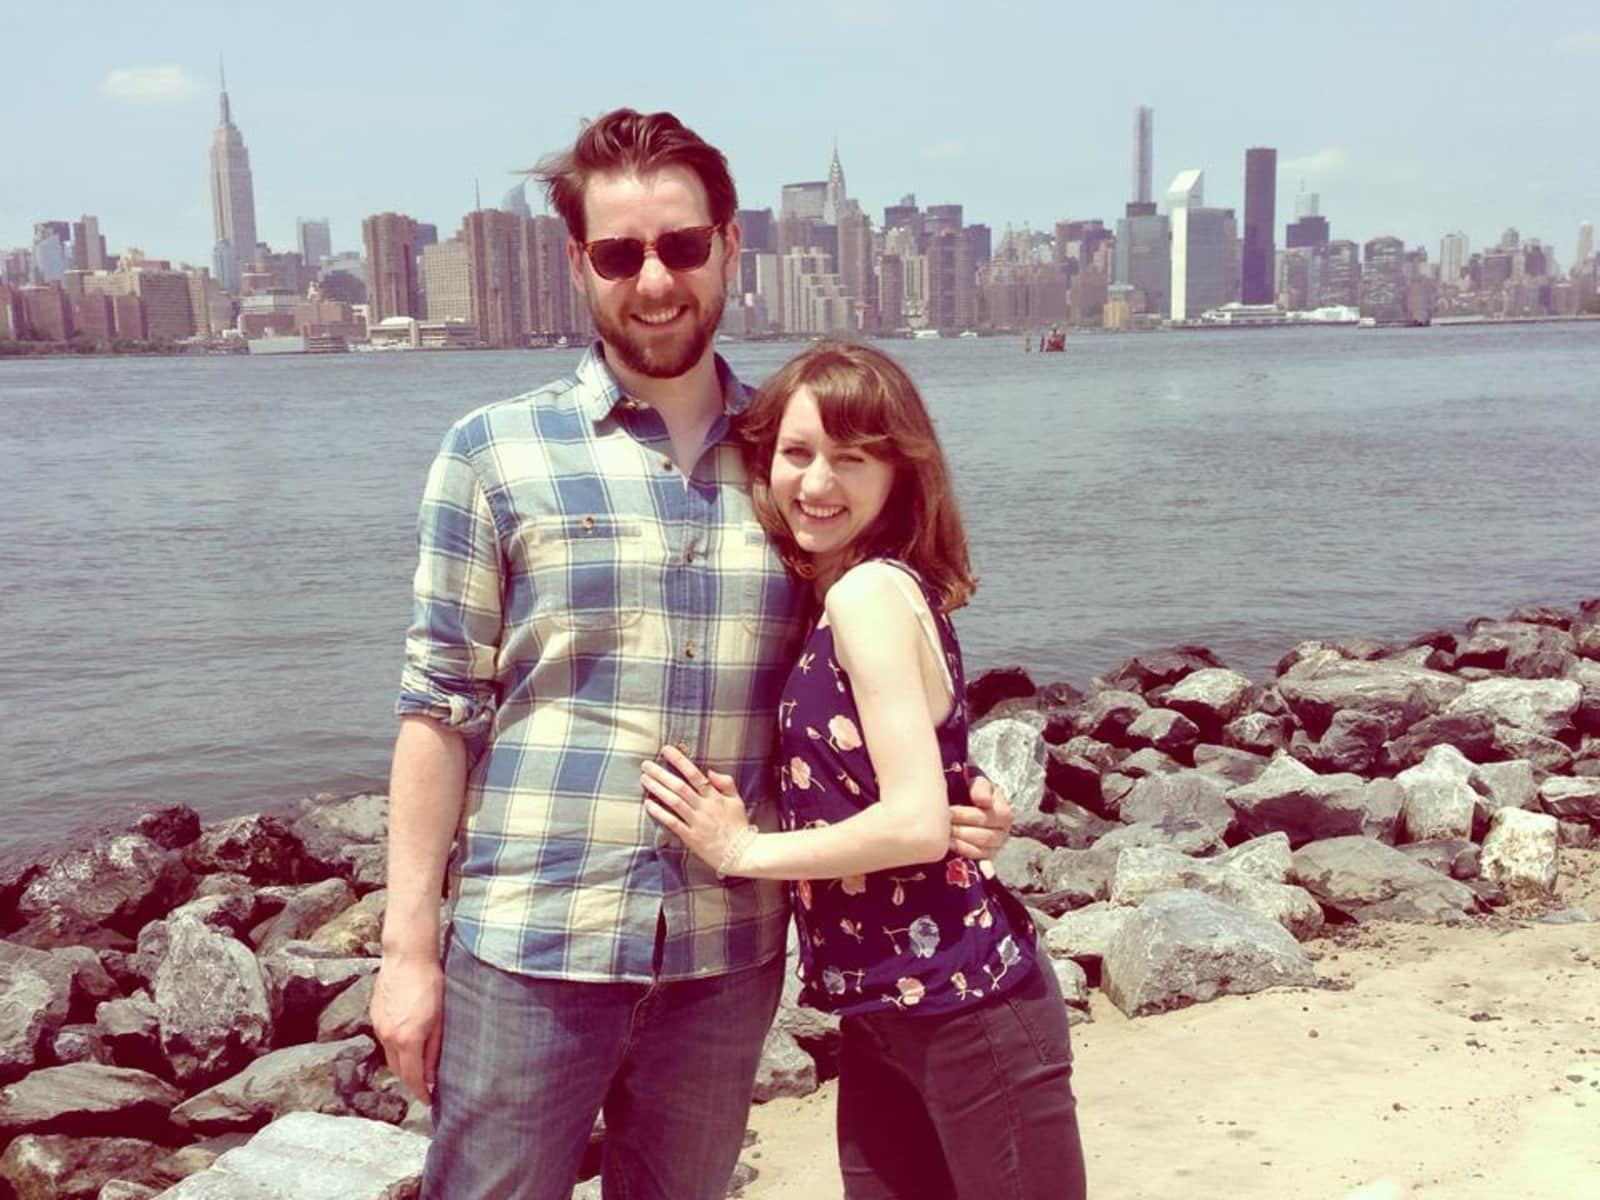 Lucy and mark & Mark from London, United Kingdom